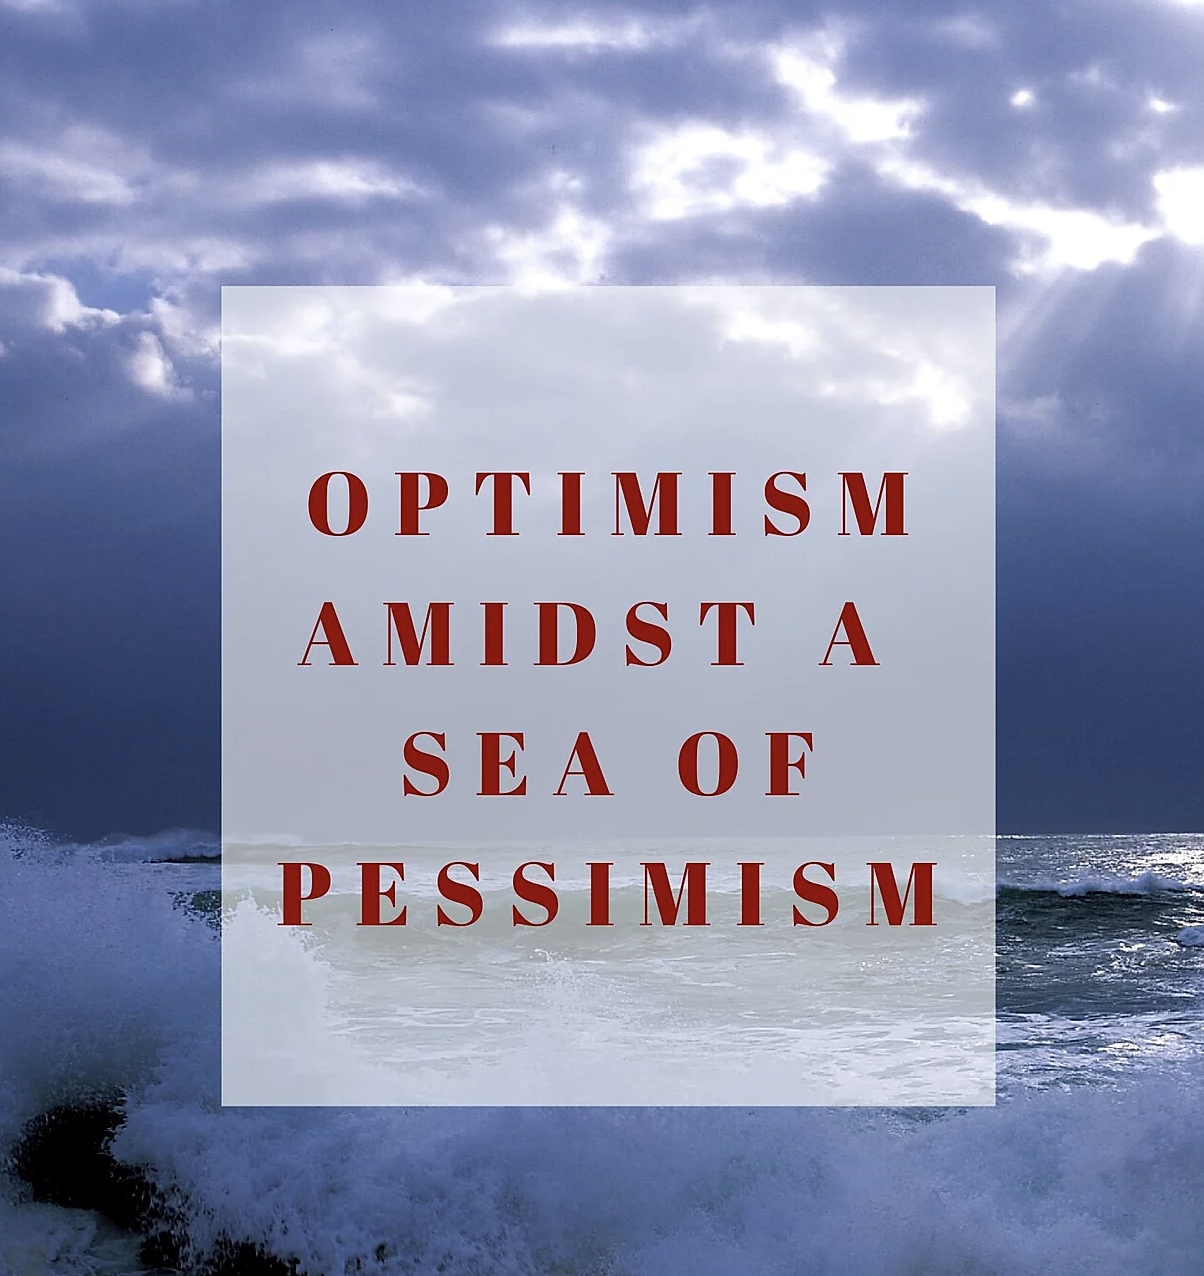 Optimism amidst a sea of pessimism